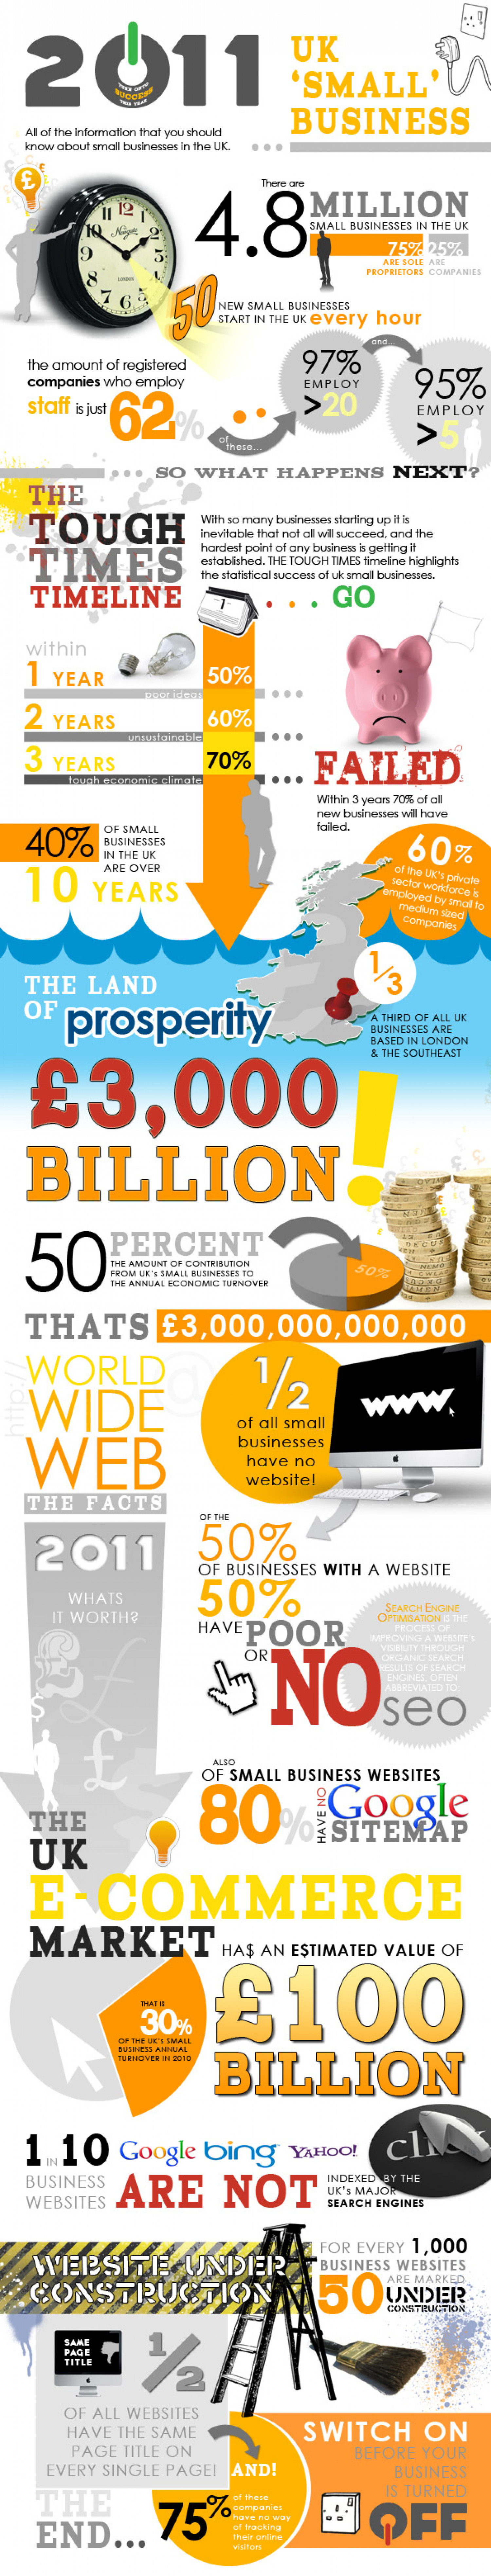 UK Small Business in 2011 Infographic